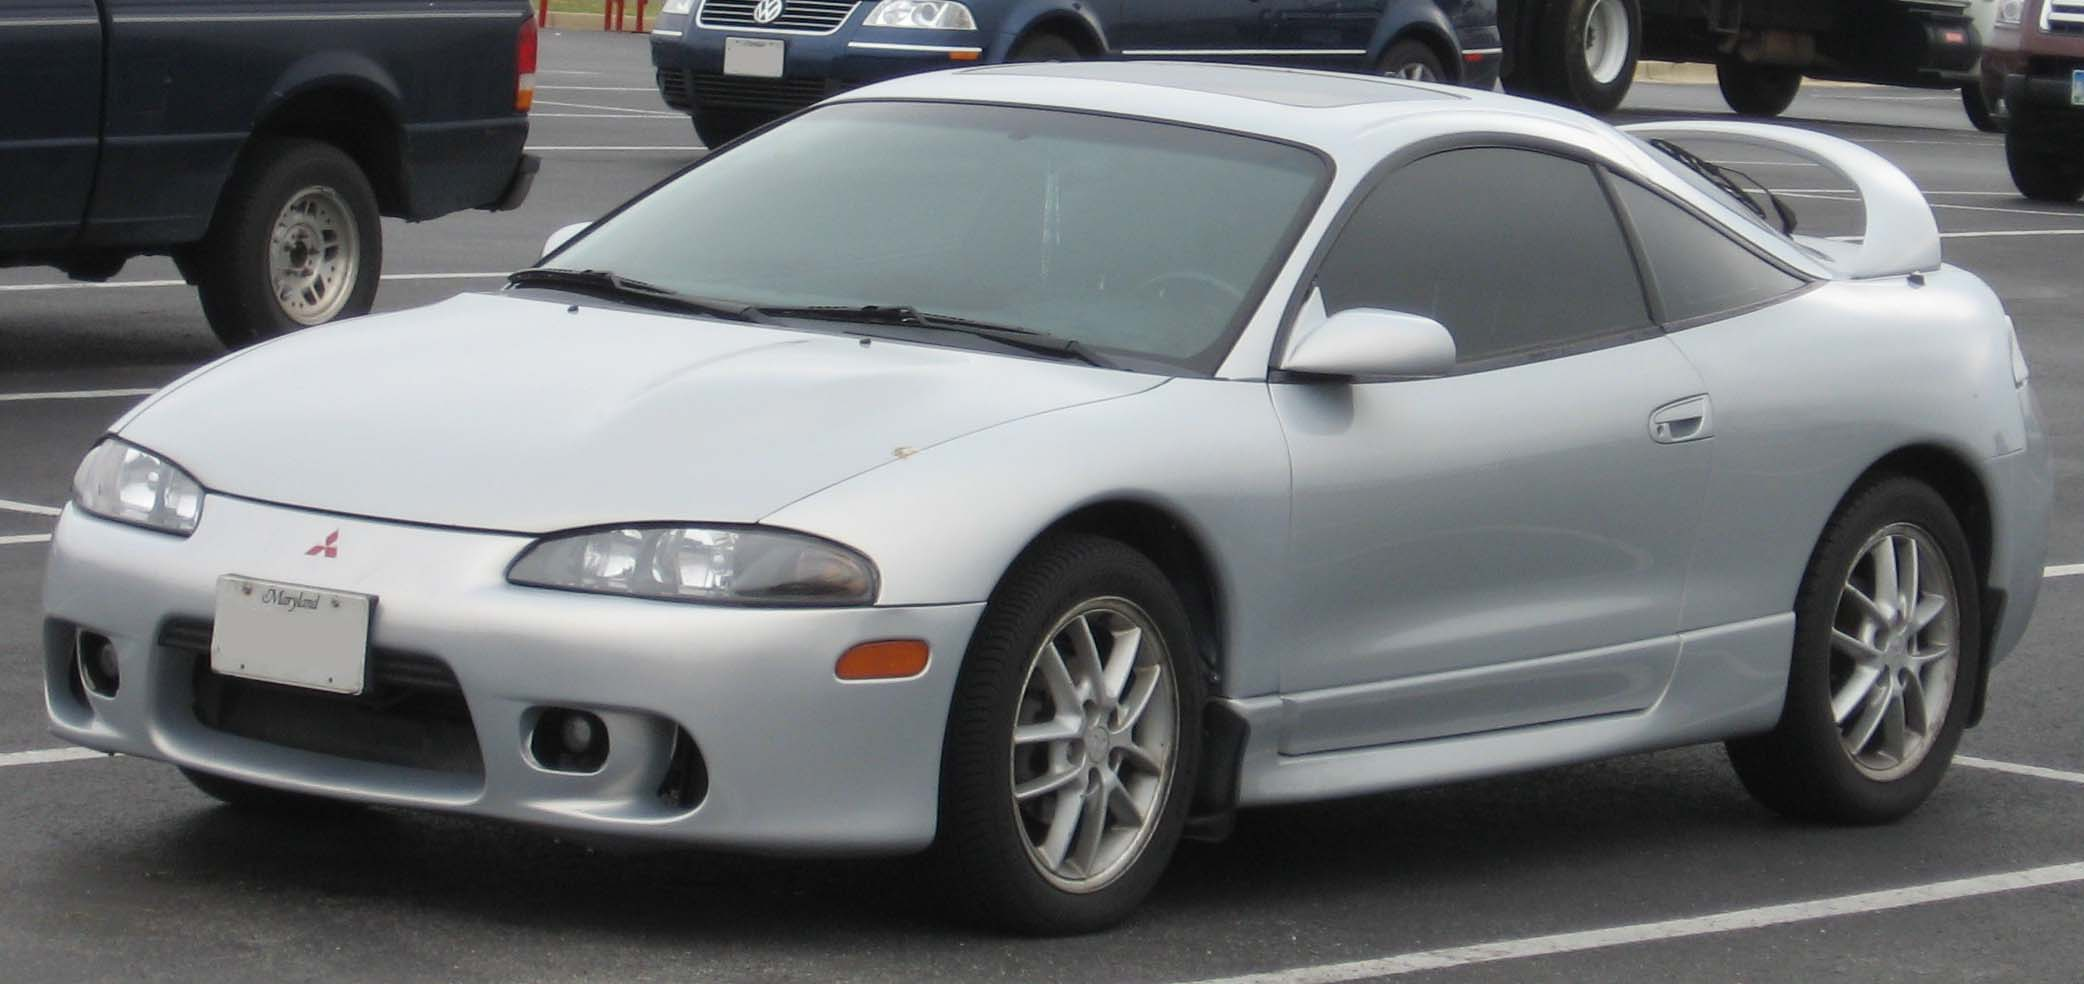 Mitsubishi Eclipse history, photos on Better Parts LTD